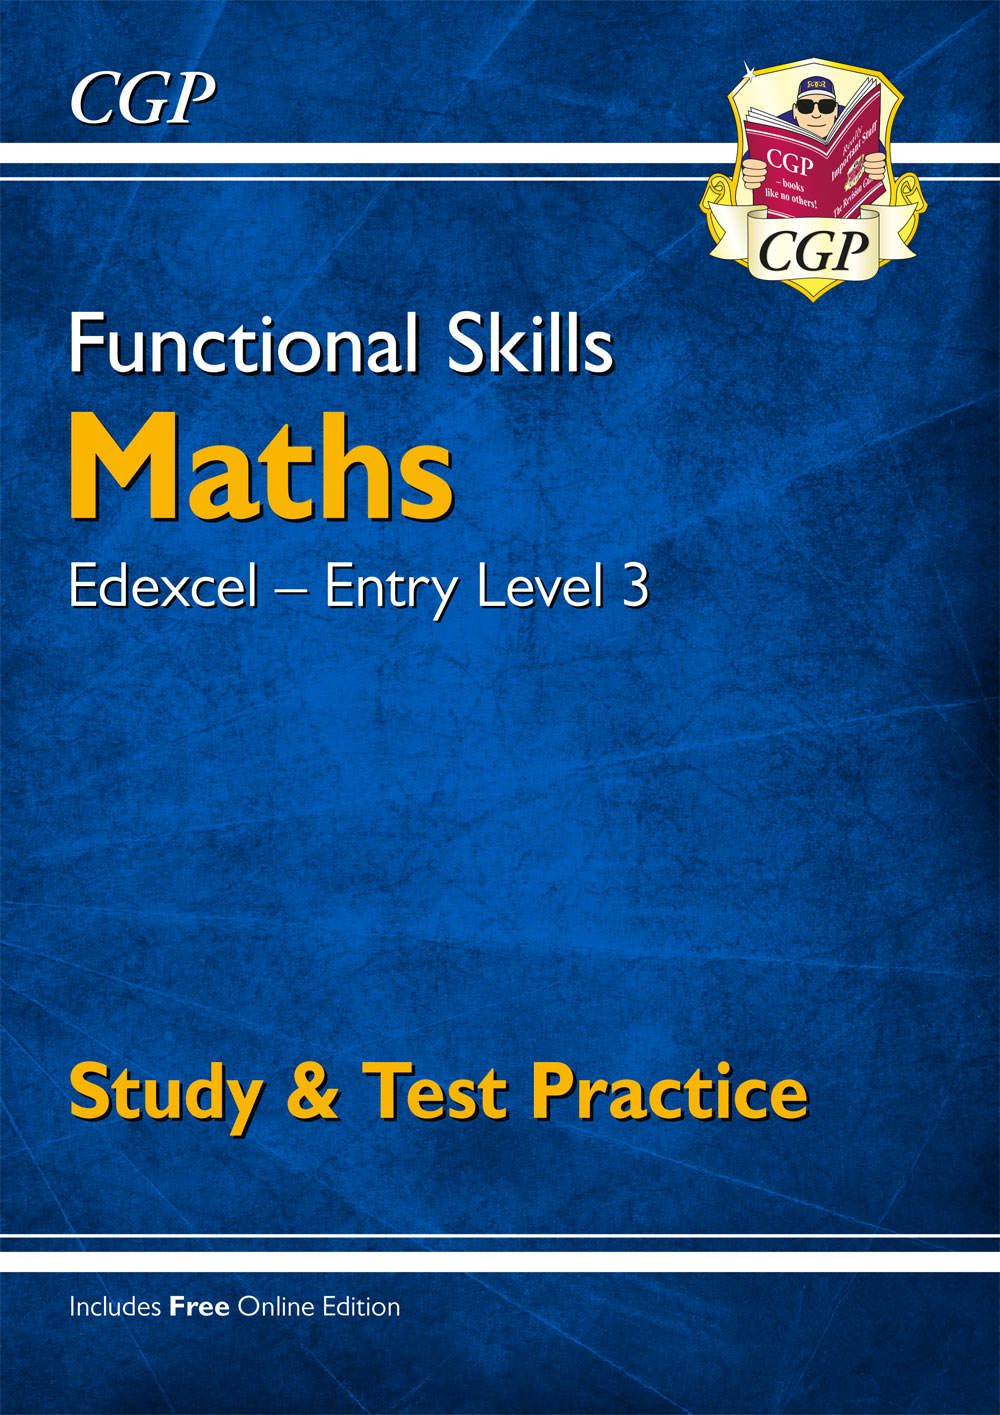 New Functional Skills Maths: Edexcel Entry Level 3 - Study & Test Practice  (for 2019 & beyond)